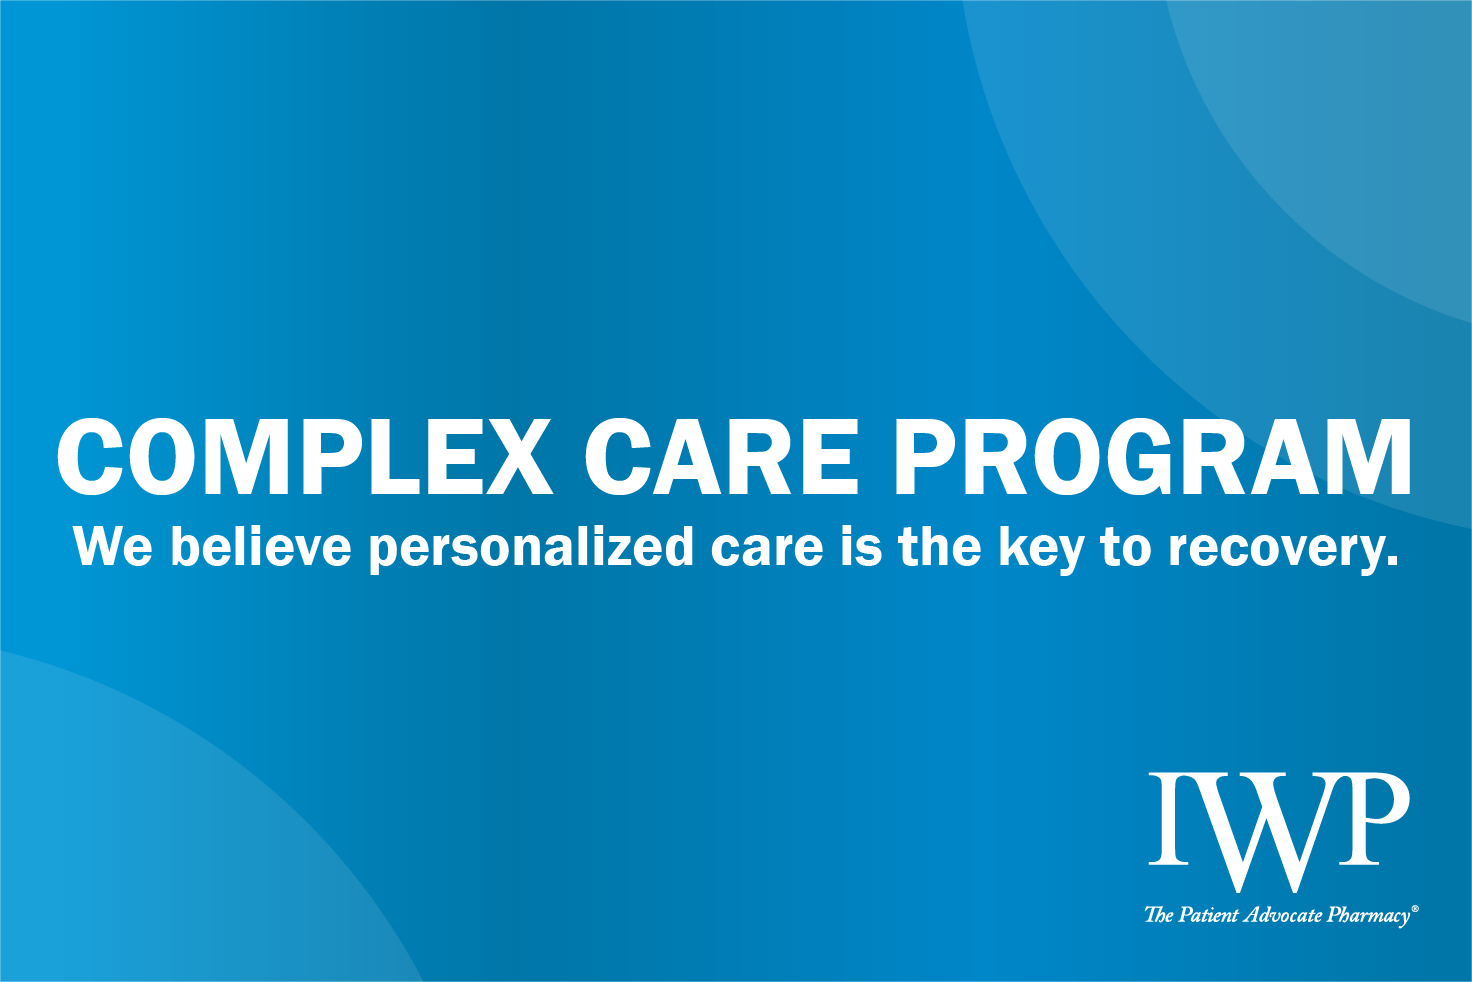 Complex Care Program Launch LI